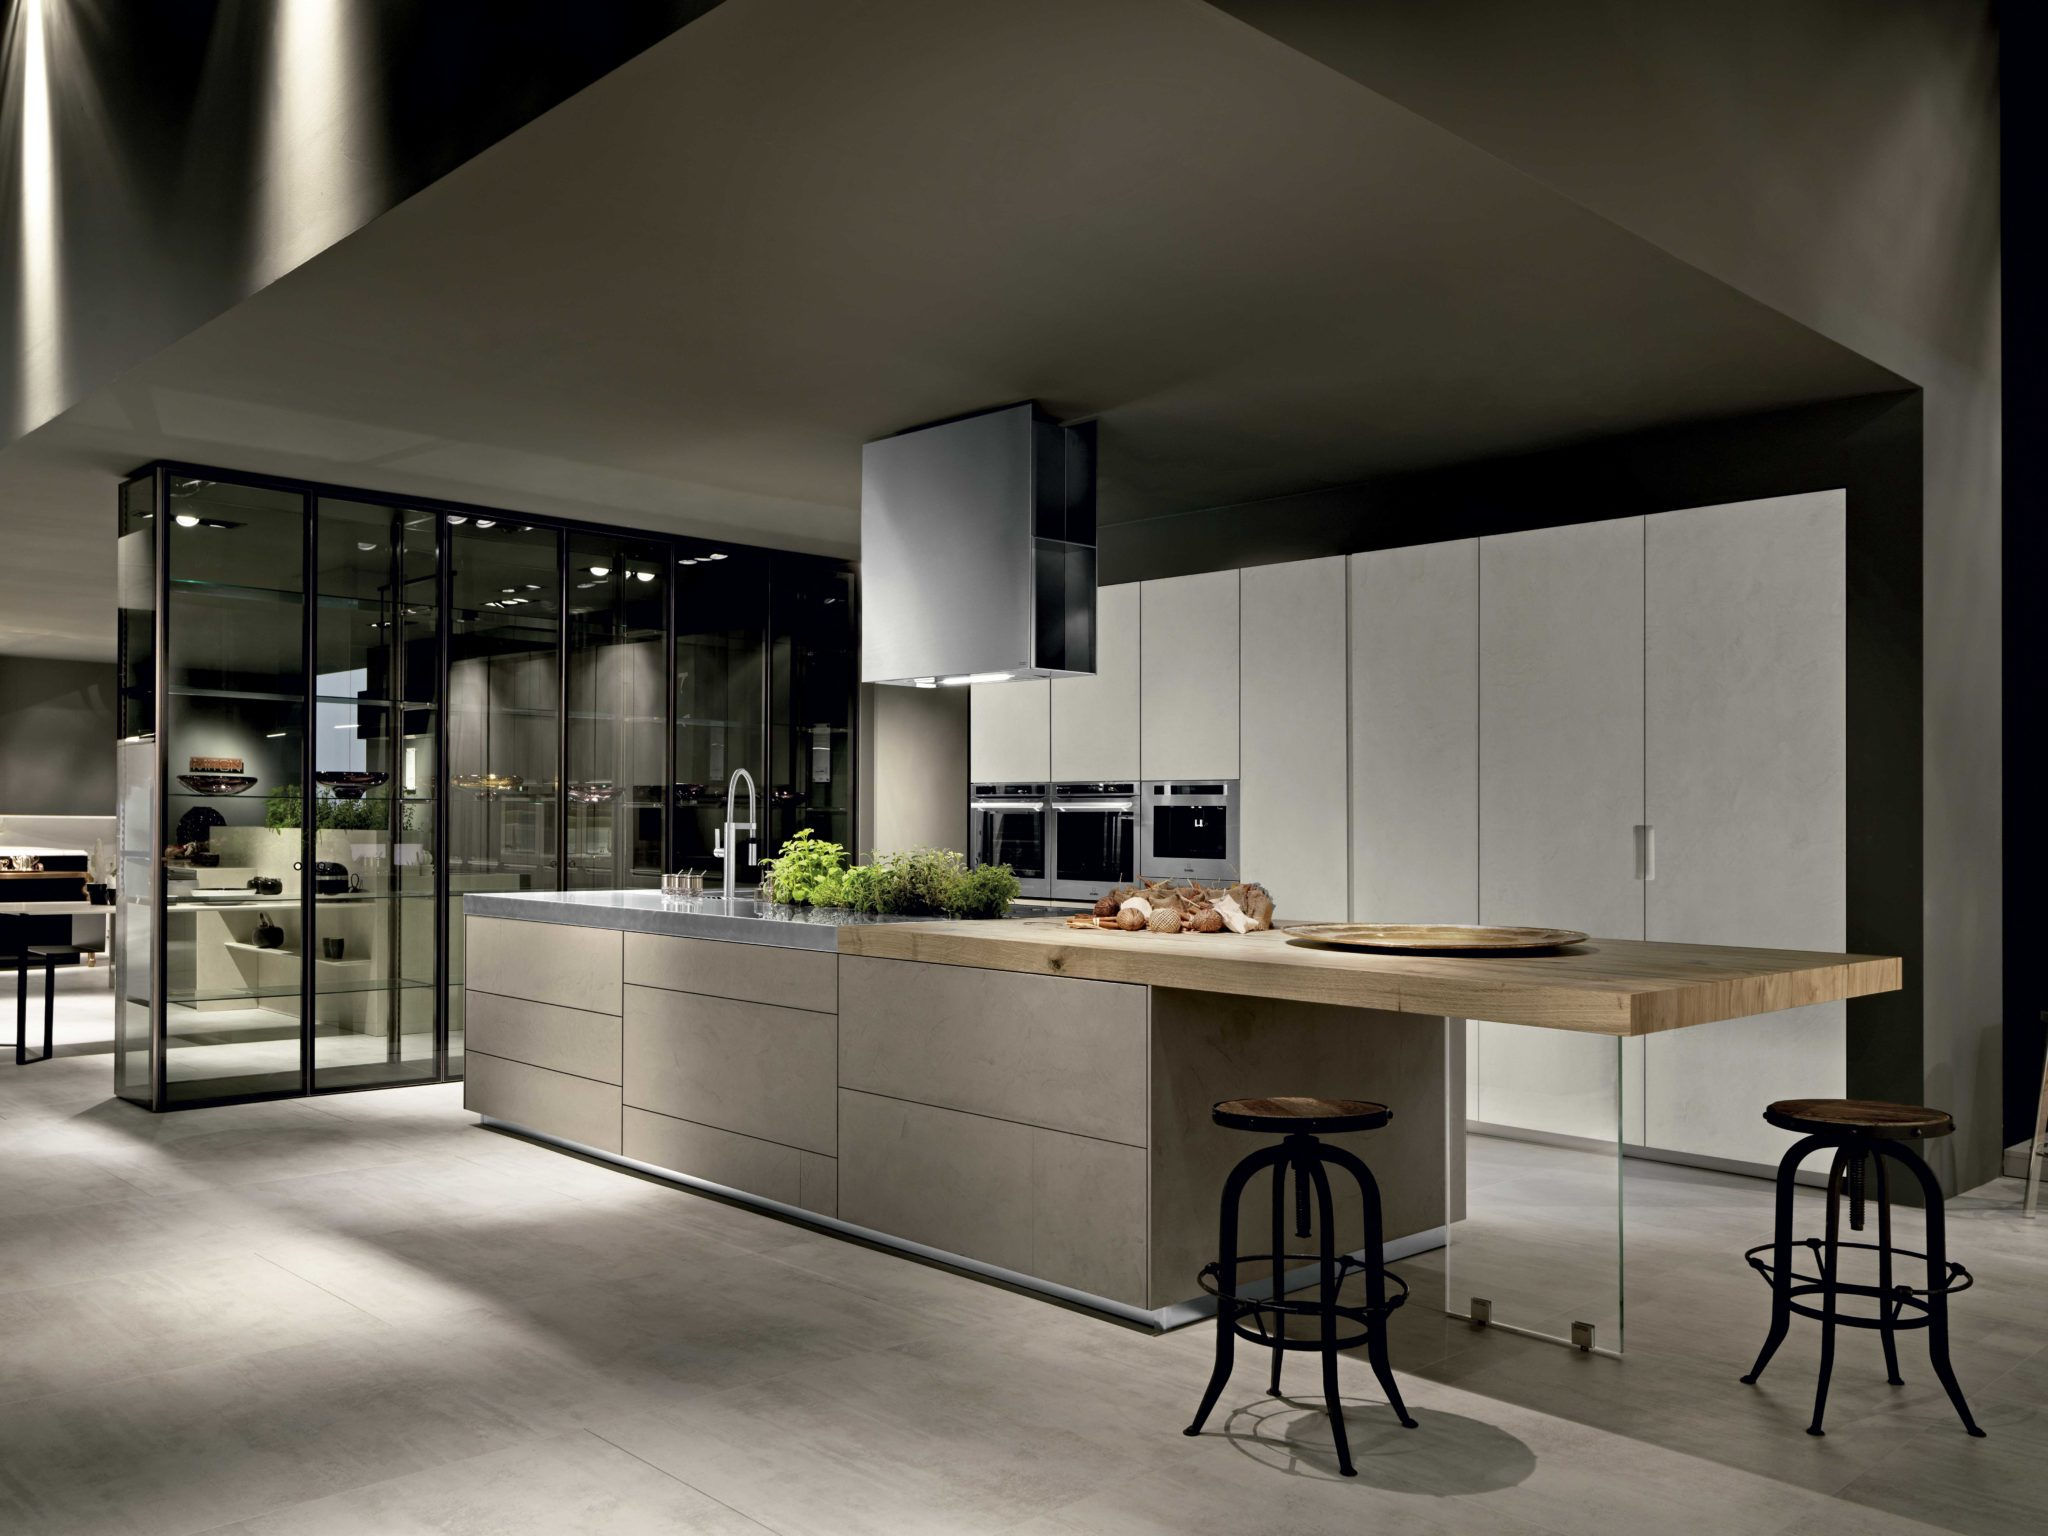 Kitchen cabinets Century City Set in the kitchen Limha cemento